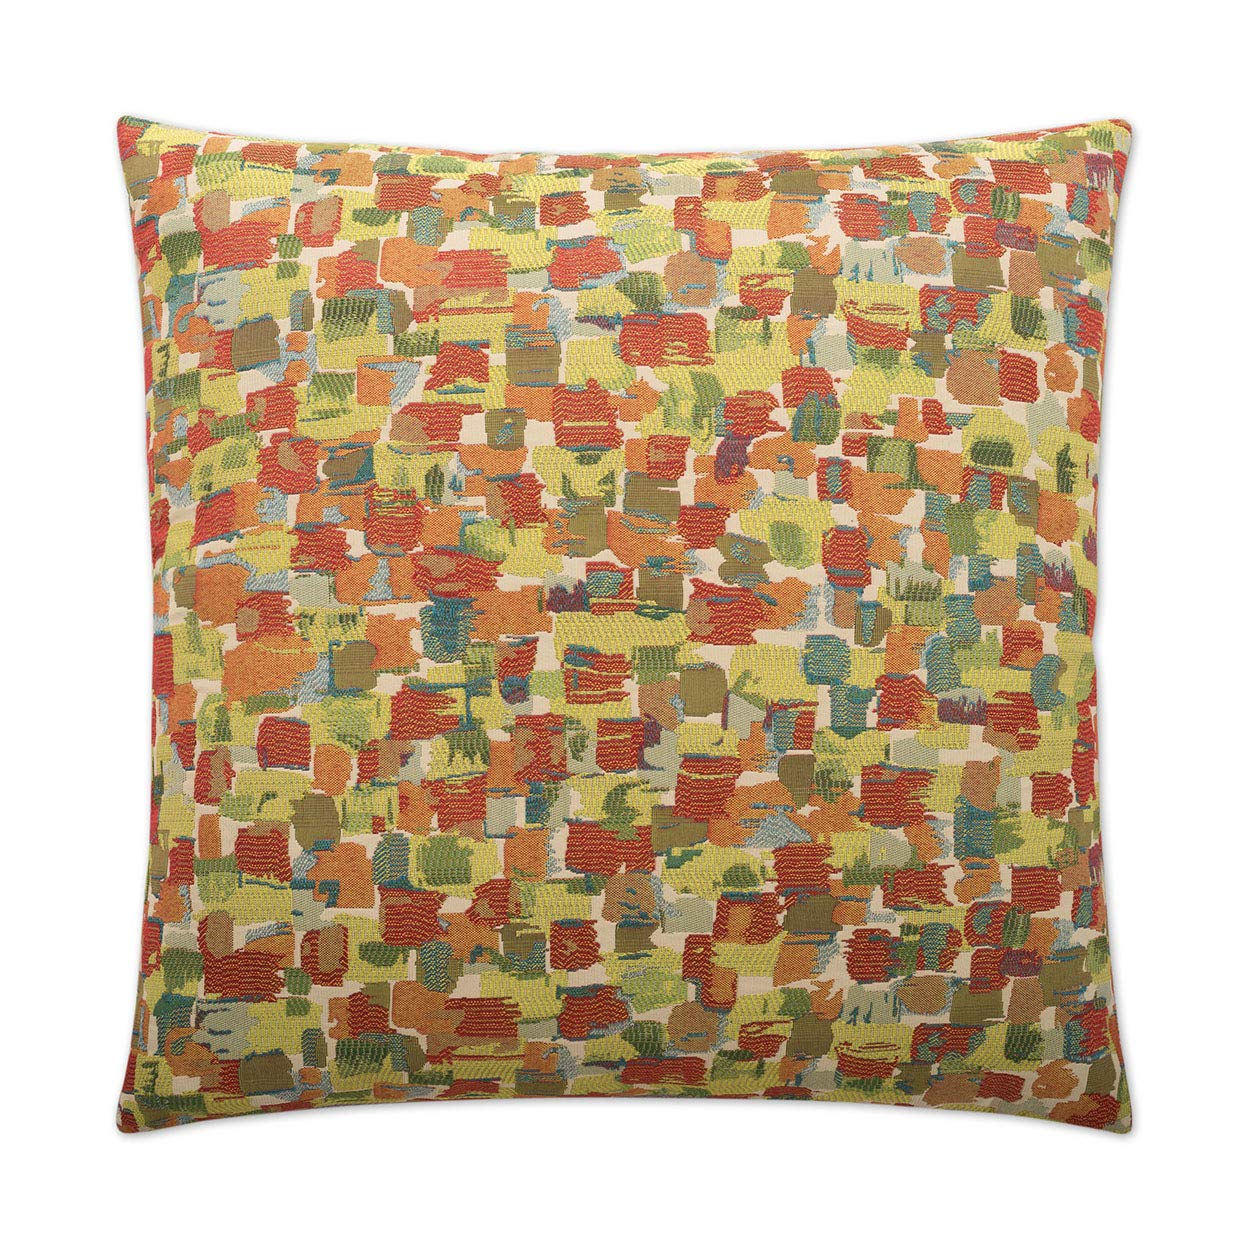 D.V. KAP Expressionist - Multi (Set of 2) - Decorative Pillows